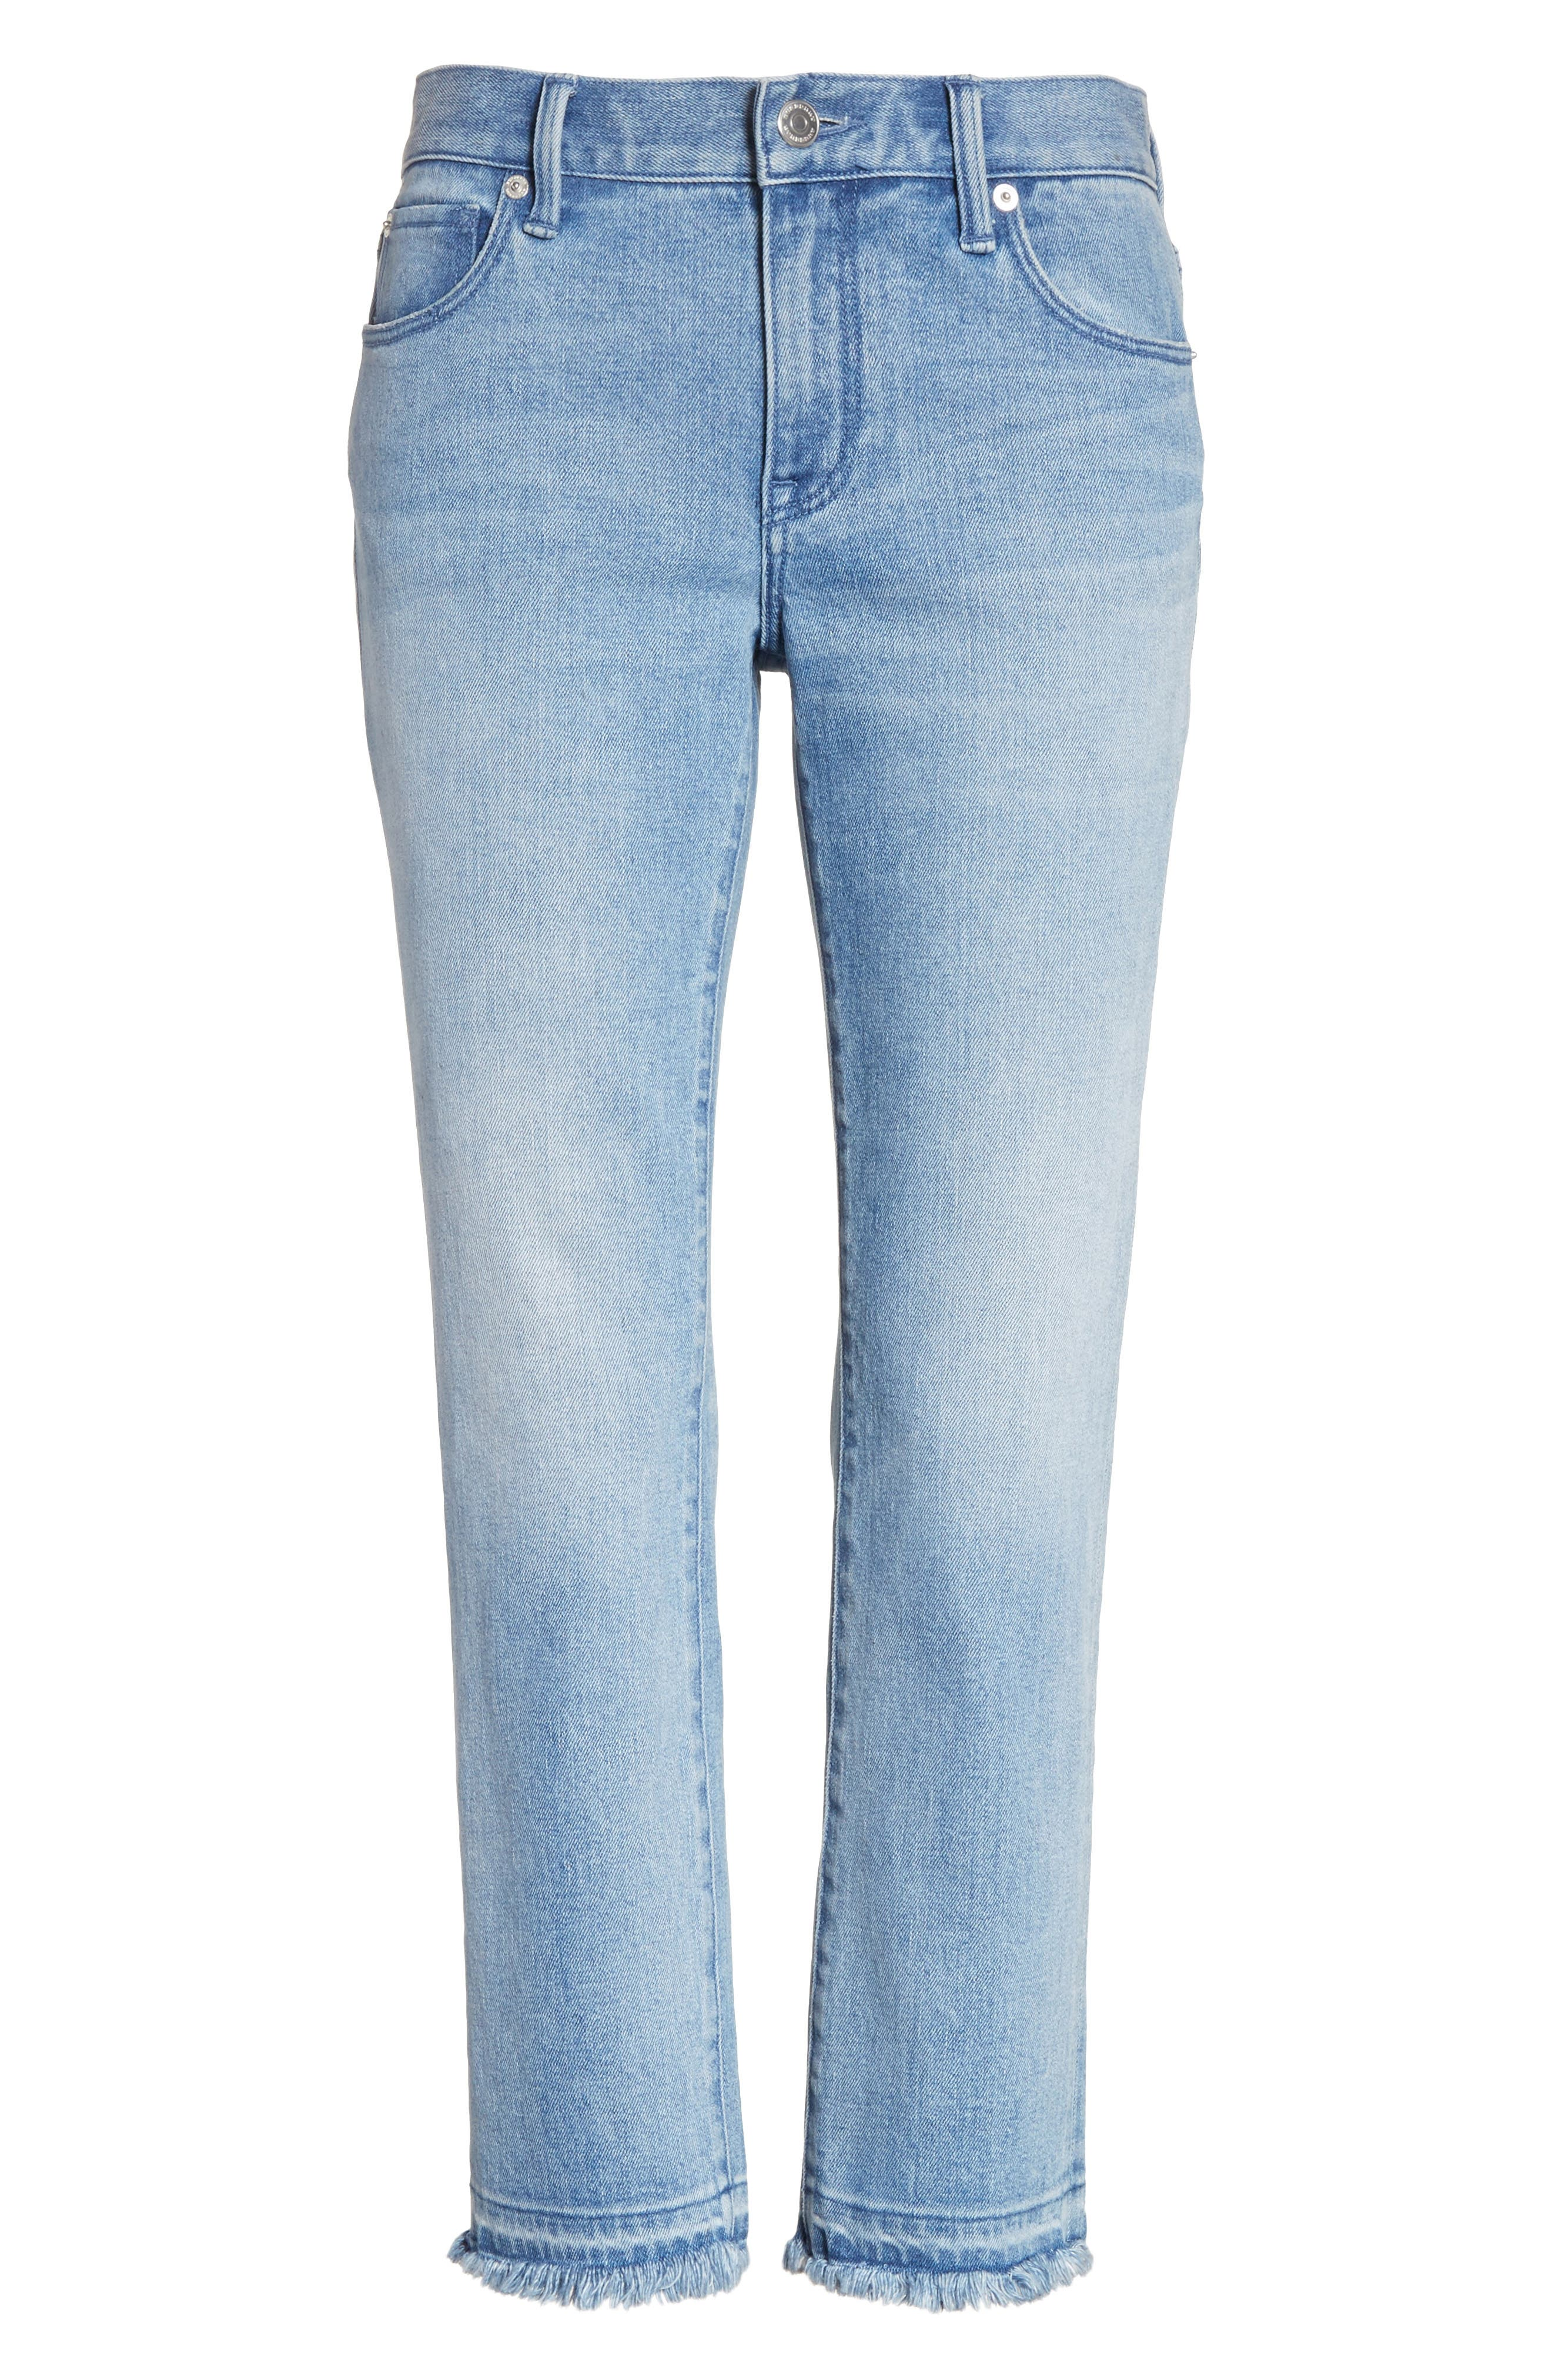 Relaxed Crop Jeans,                             Alternate thumbnail 6, color,                             Pale Blue